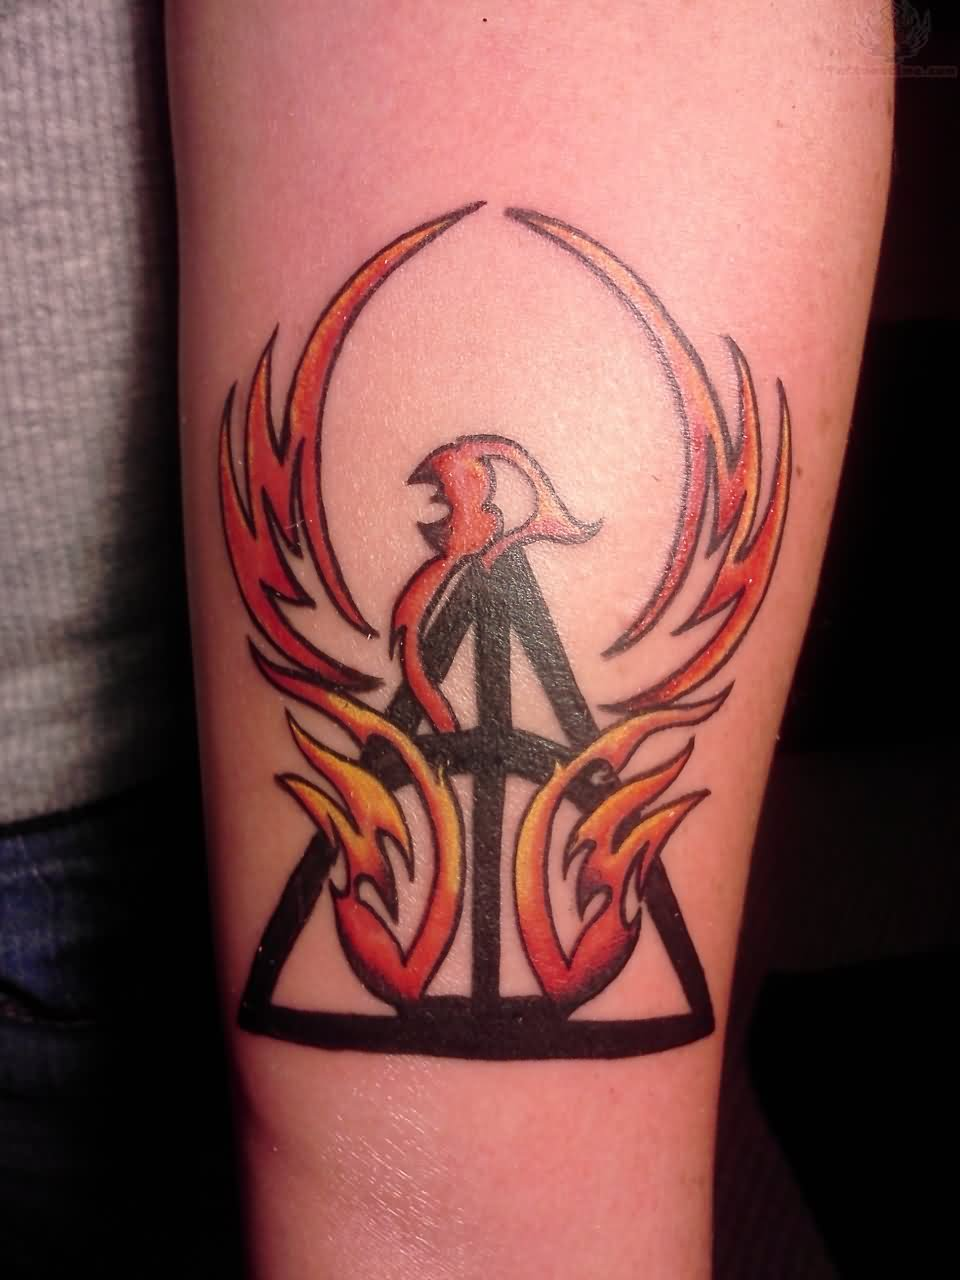 Colorful phoenix tattoo designs - Unique Phoenix With Deathly Hallows Symbol Tattoo Design For Forearm